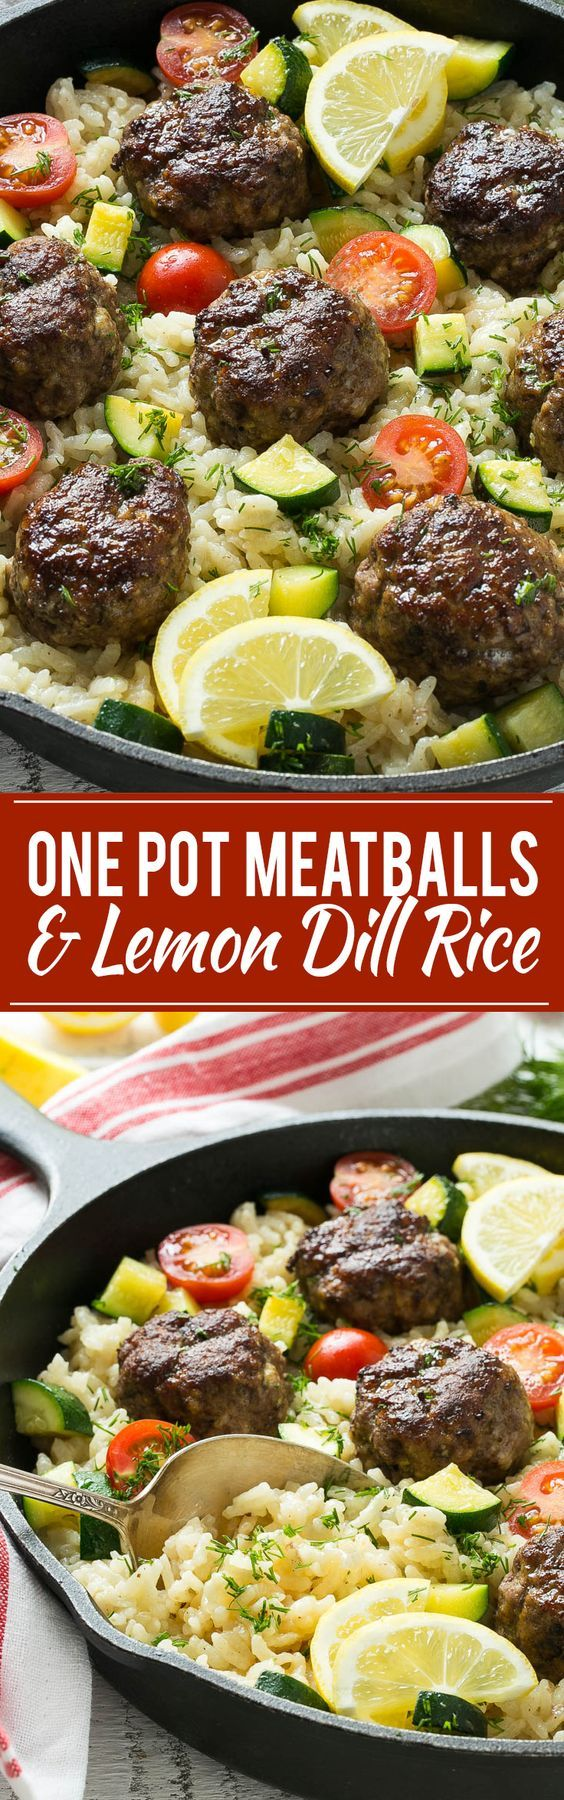 This recipe for one pot greek meatballs with lemon dill rice includes savory greek spiced beef meatballs creamy arborio rice and vegetables all cooked together in a single pot!This recipe for one pot greek meatballs with lemon dill rice includes savory greek spiced beef meatballs creamy arborio rice and vegetables all cooked together in a single pot!